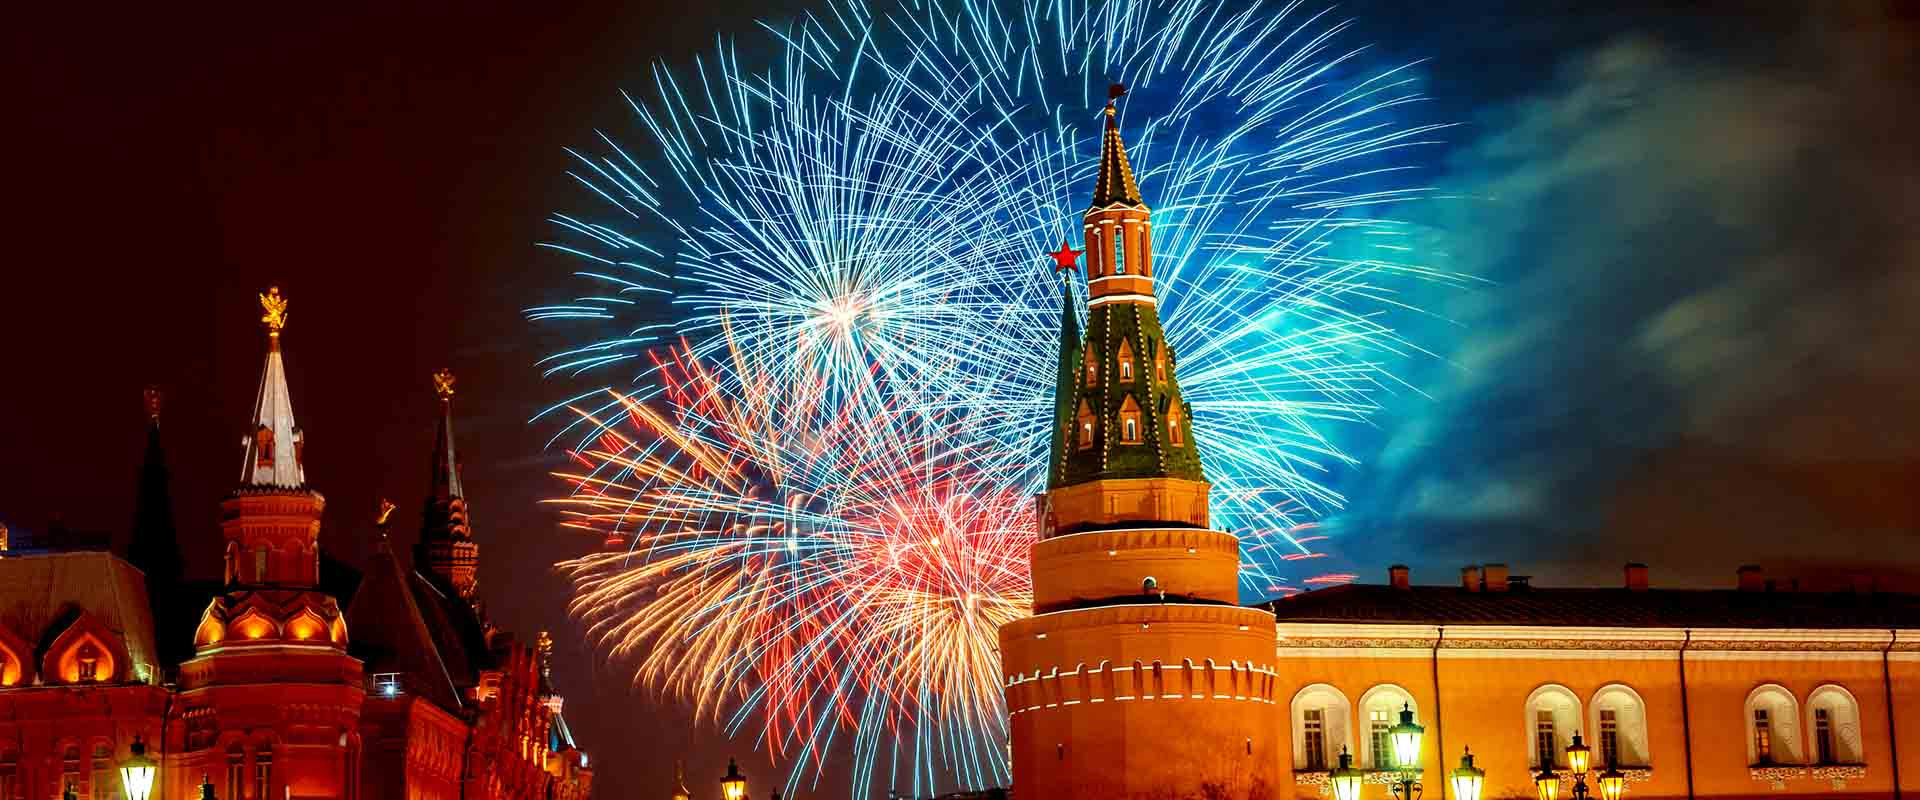 Orthodox Christmas In Russia 2020 2022 Orthodox Christmas 2021, 2022 and 2023   PublicHolidays.ru